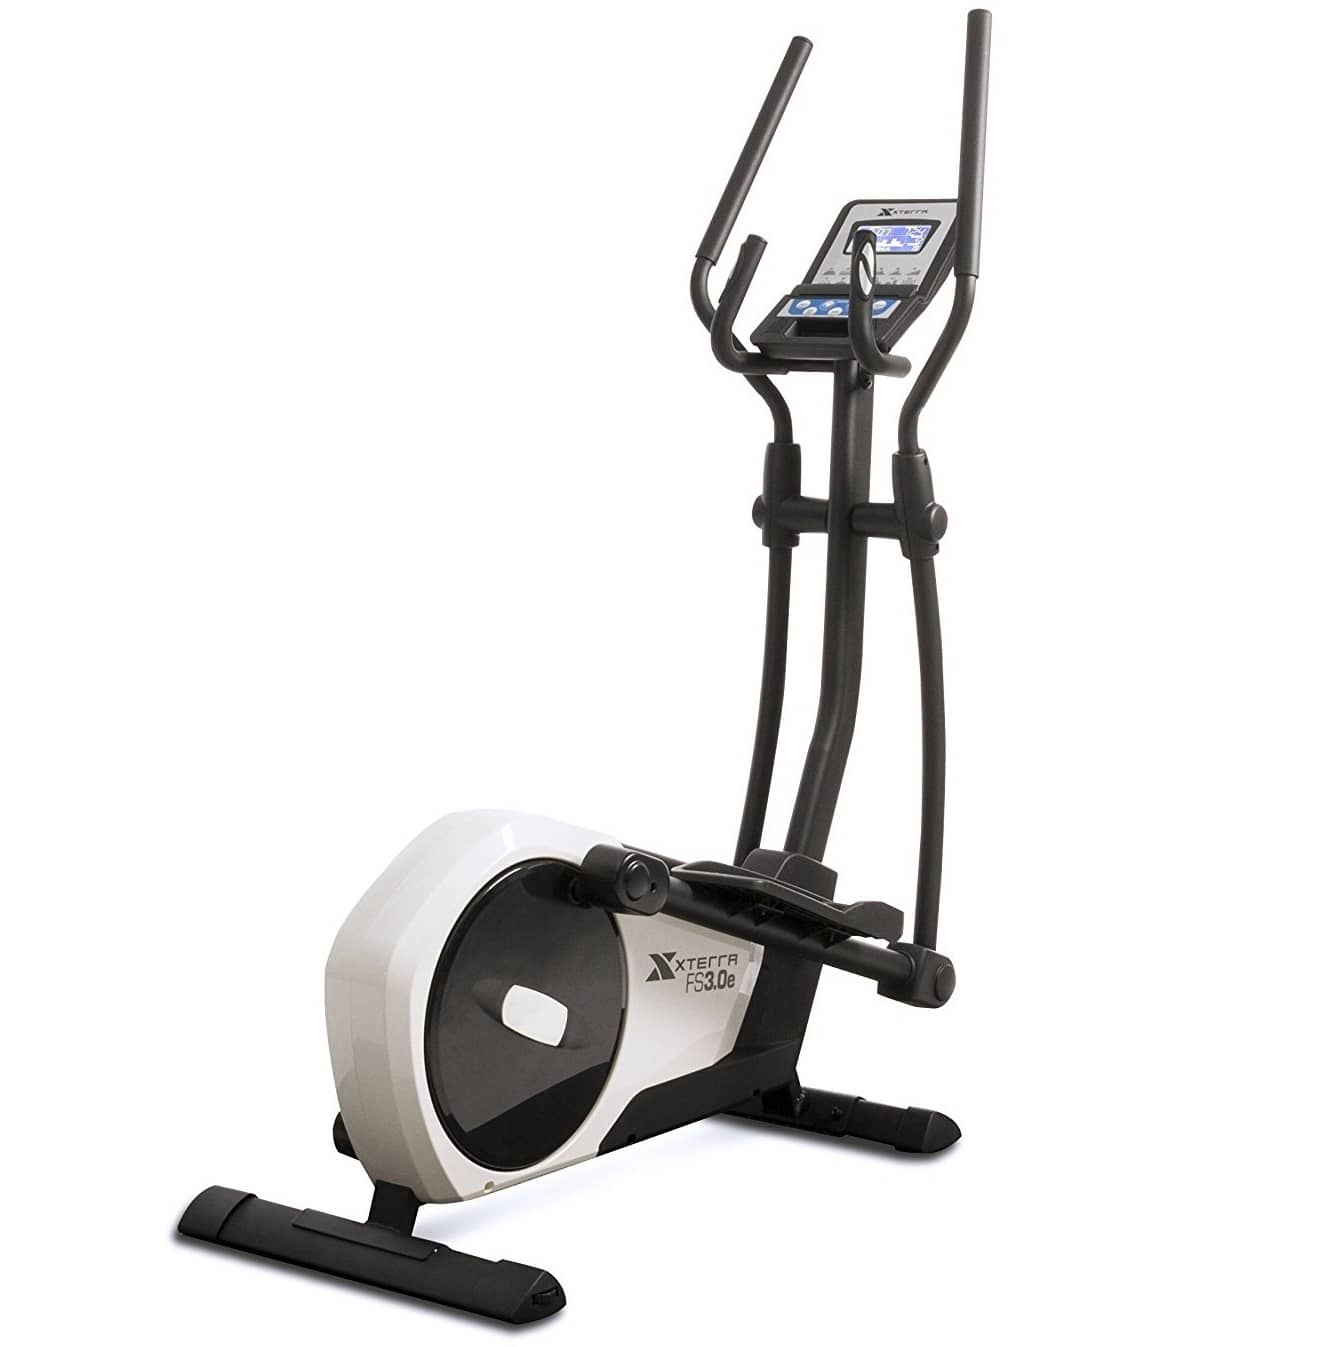 XTERRA FS 3.0 Elliptical